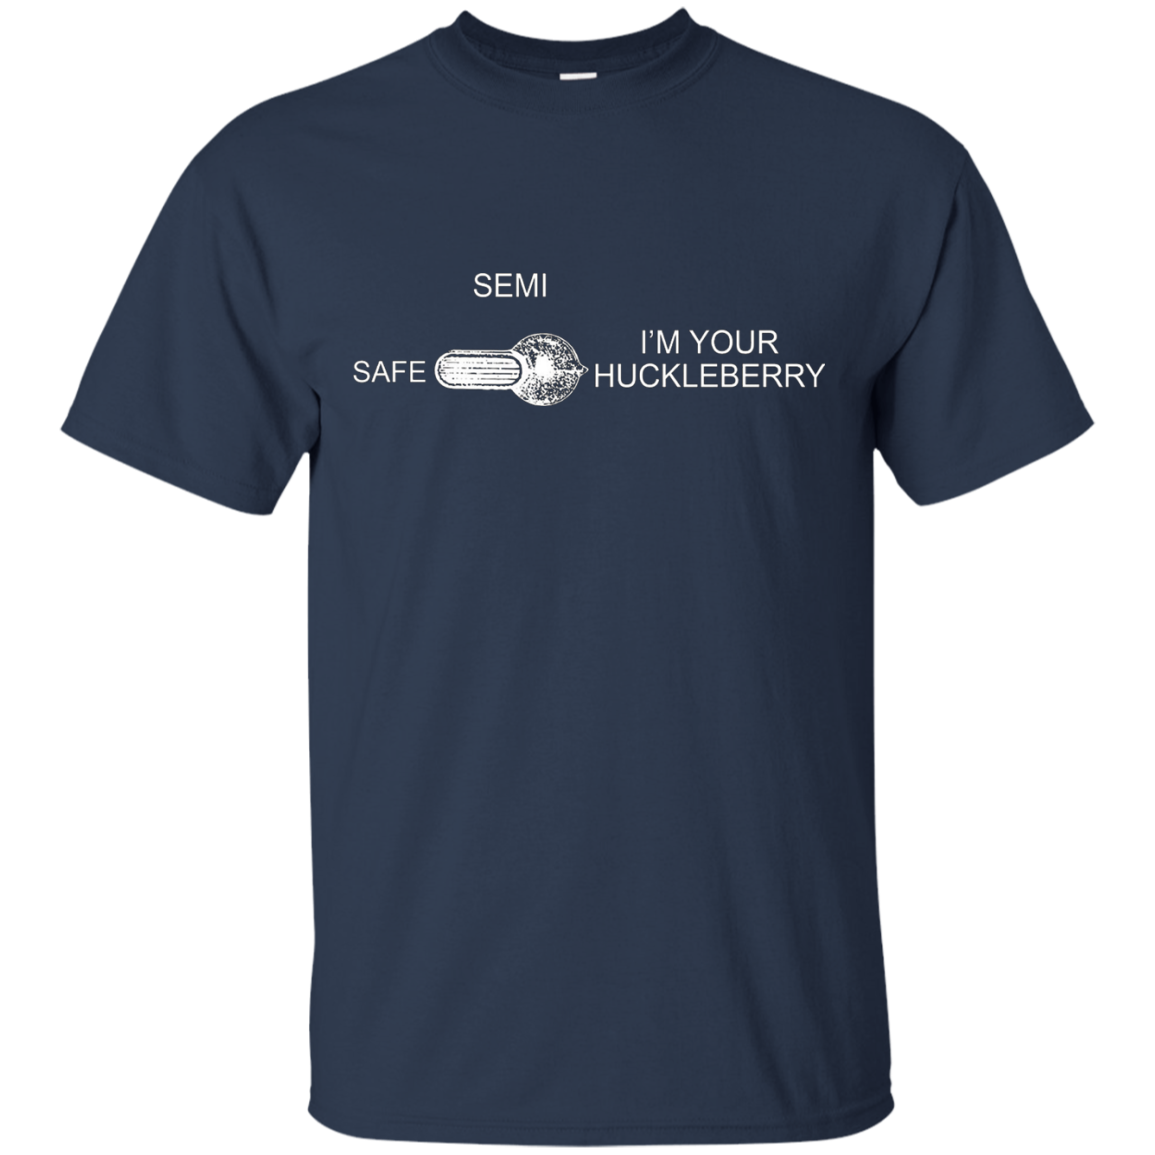 I'm Your Huckleberry Safety Selector TShirt Doc Holiday AR15